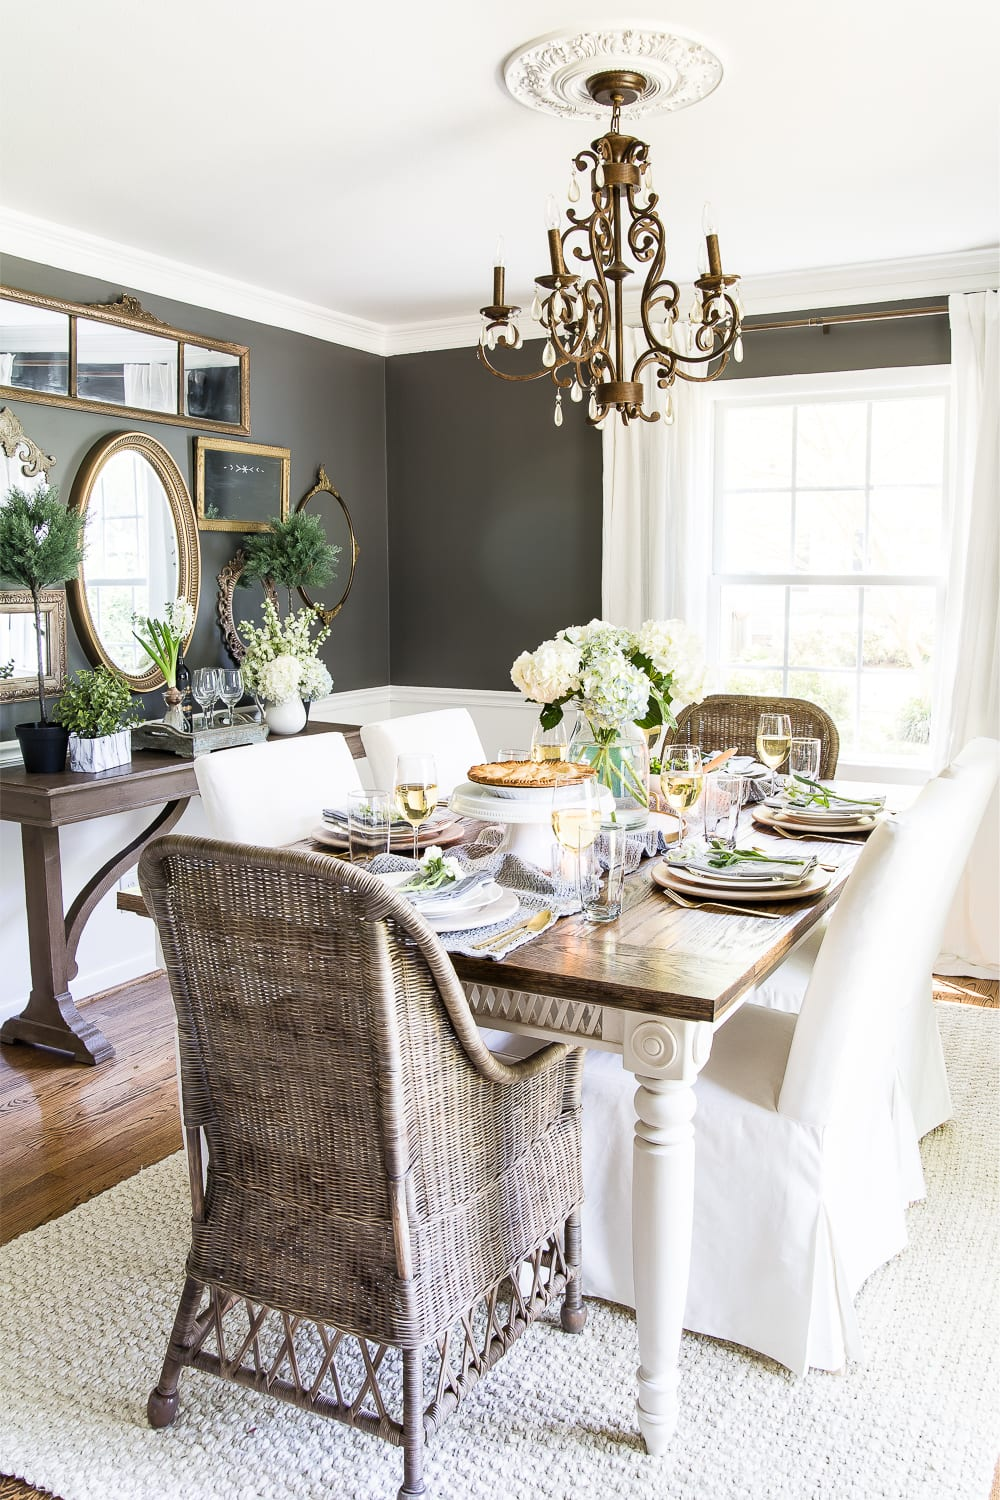 Dining room paint color - Benjamin Moore Kendall Charcoal